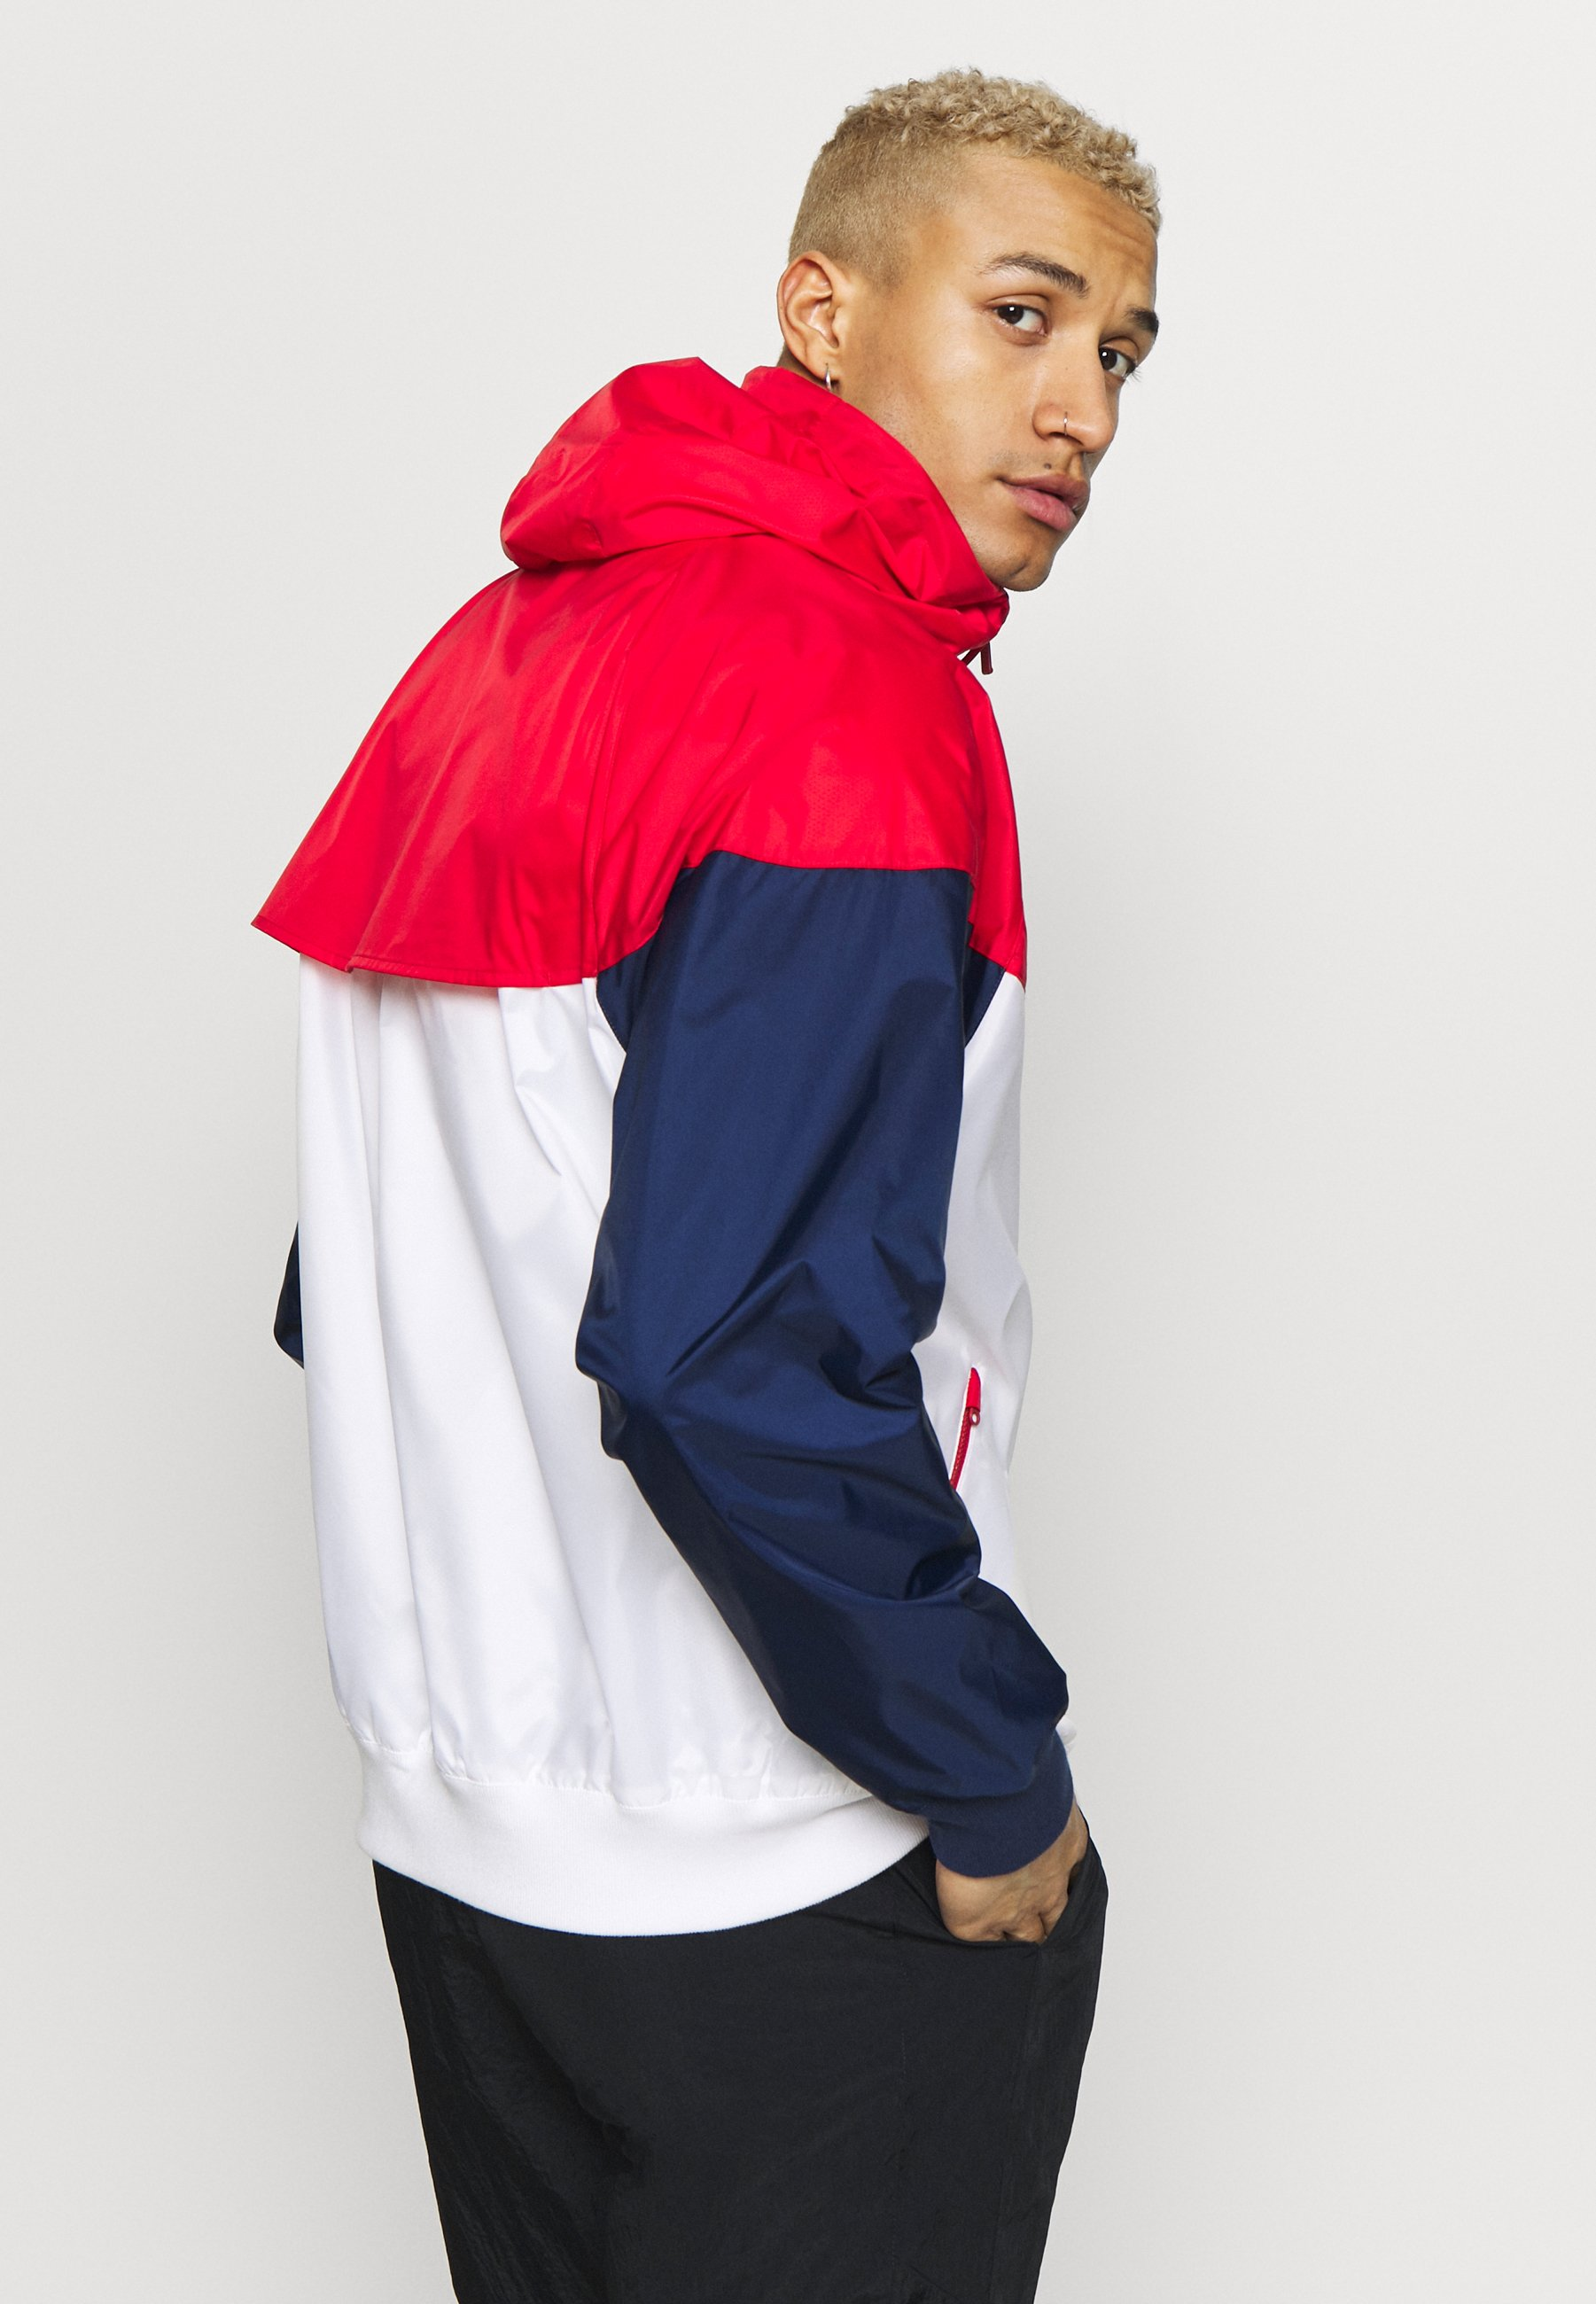 Affordable Huge Surprise Men's Clothing Nike Sportswear Windbreaker white/university red/midnight navy d4MGh5psf nLDSQs47F